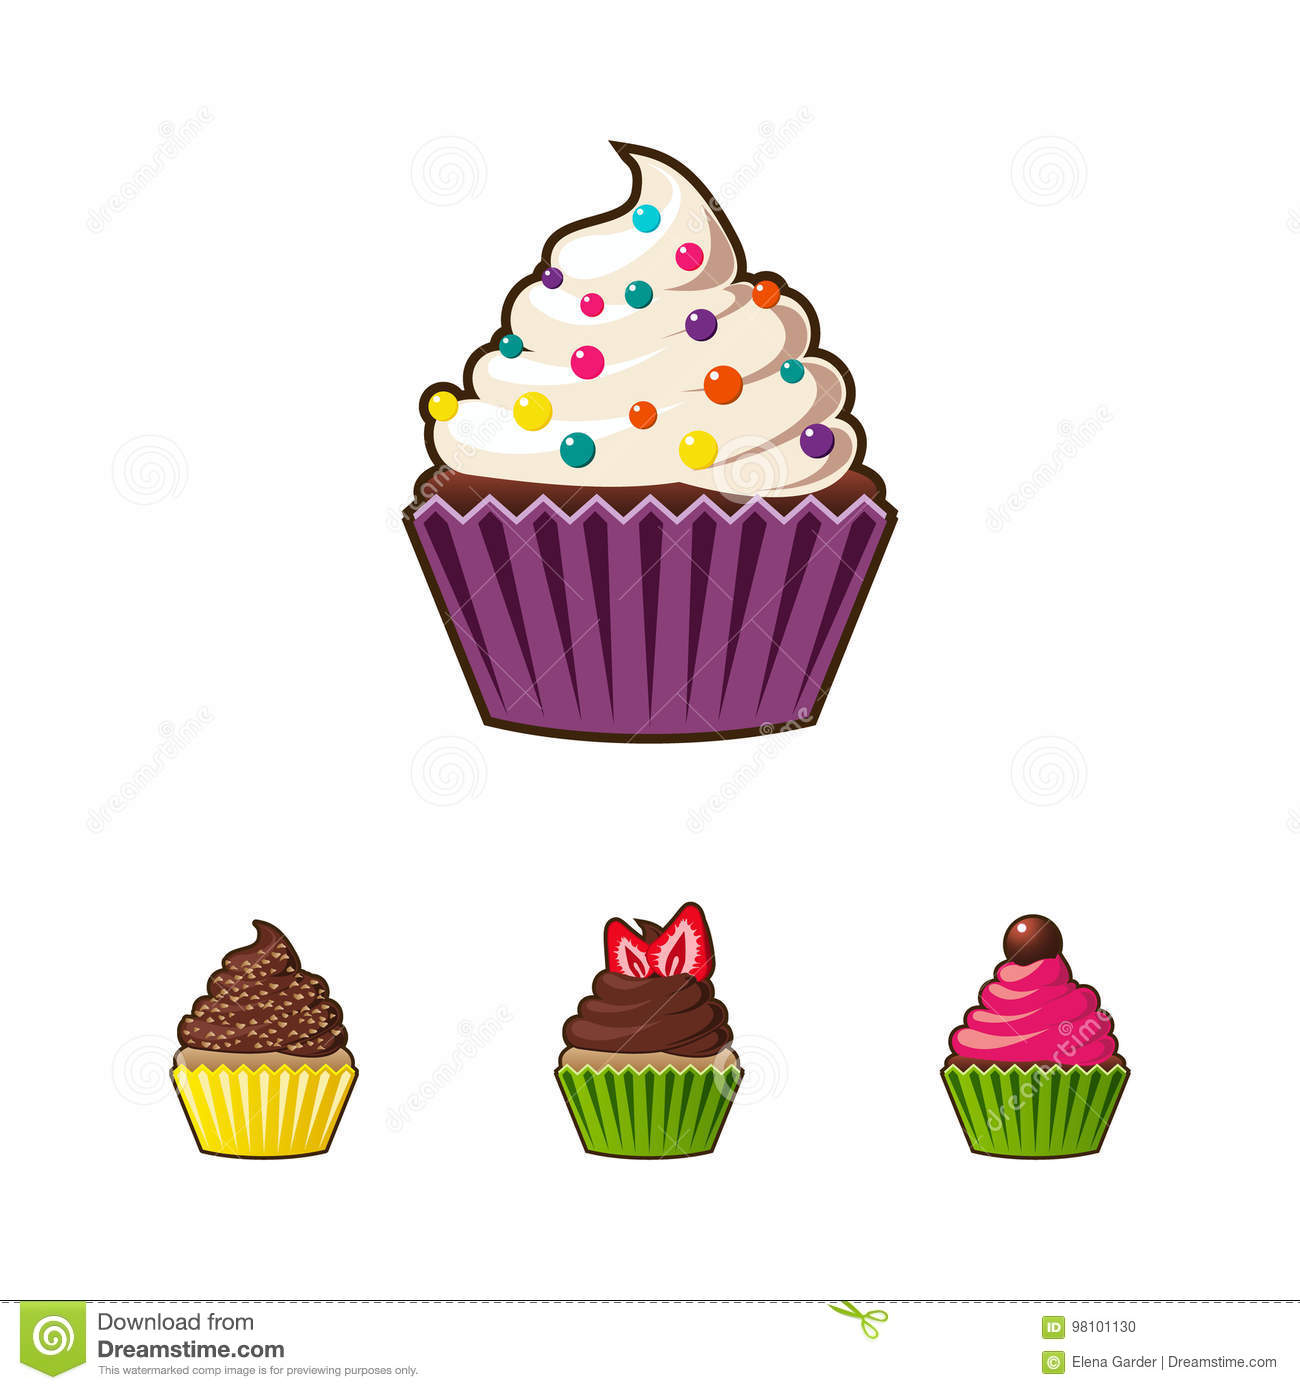 vector cupcakes or muffins icon colorful dessert with cream